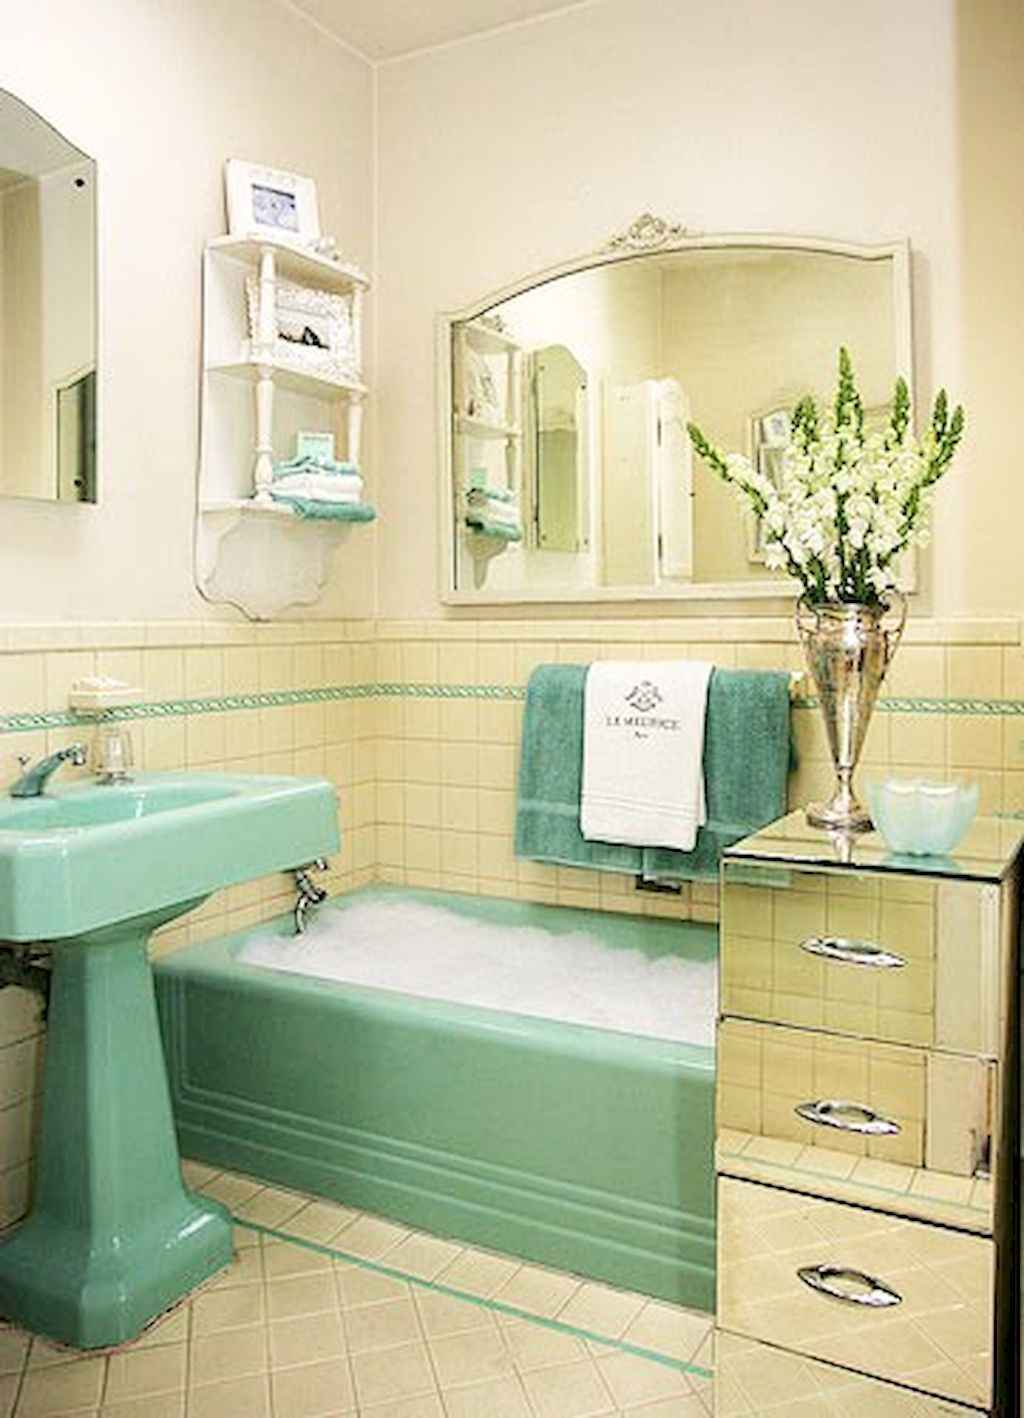 70+ stunning vintage bathroom decor & design ideas to inspire you (59)